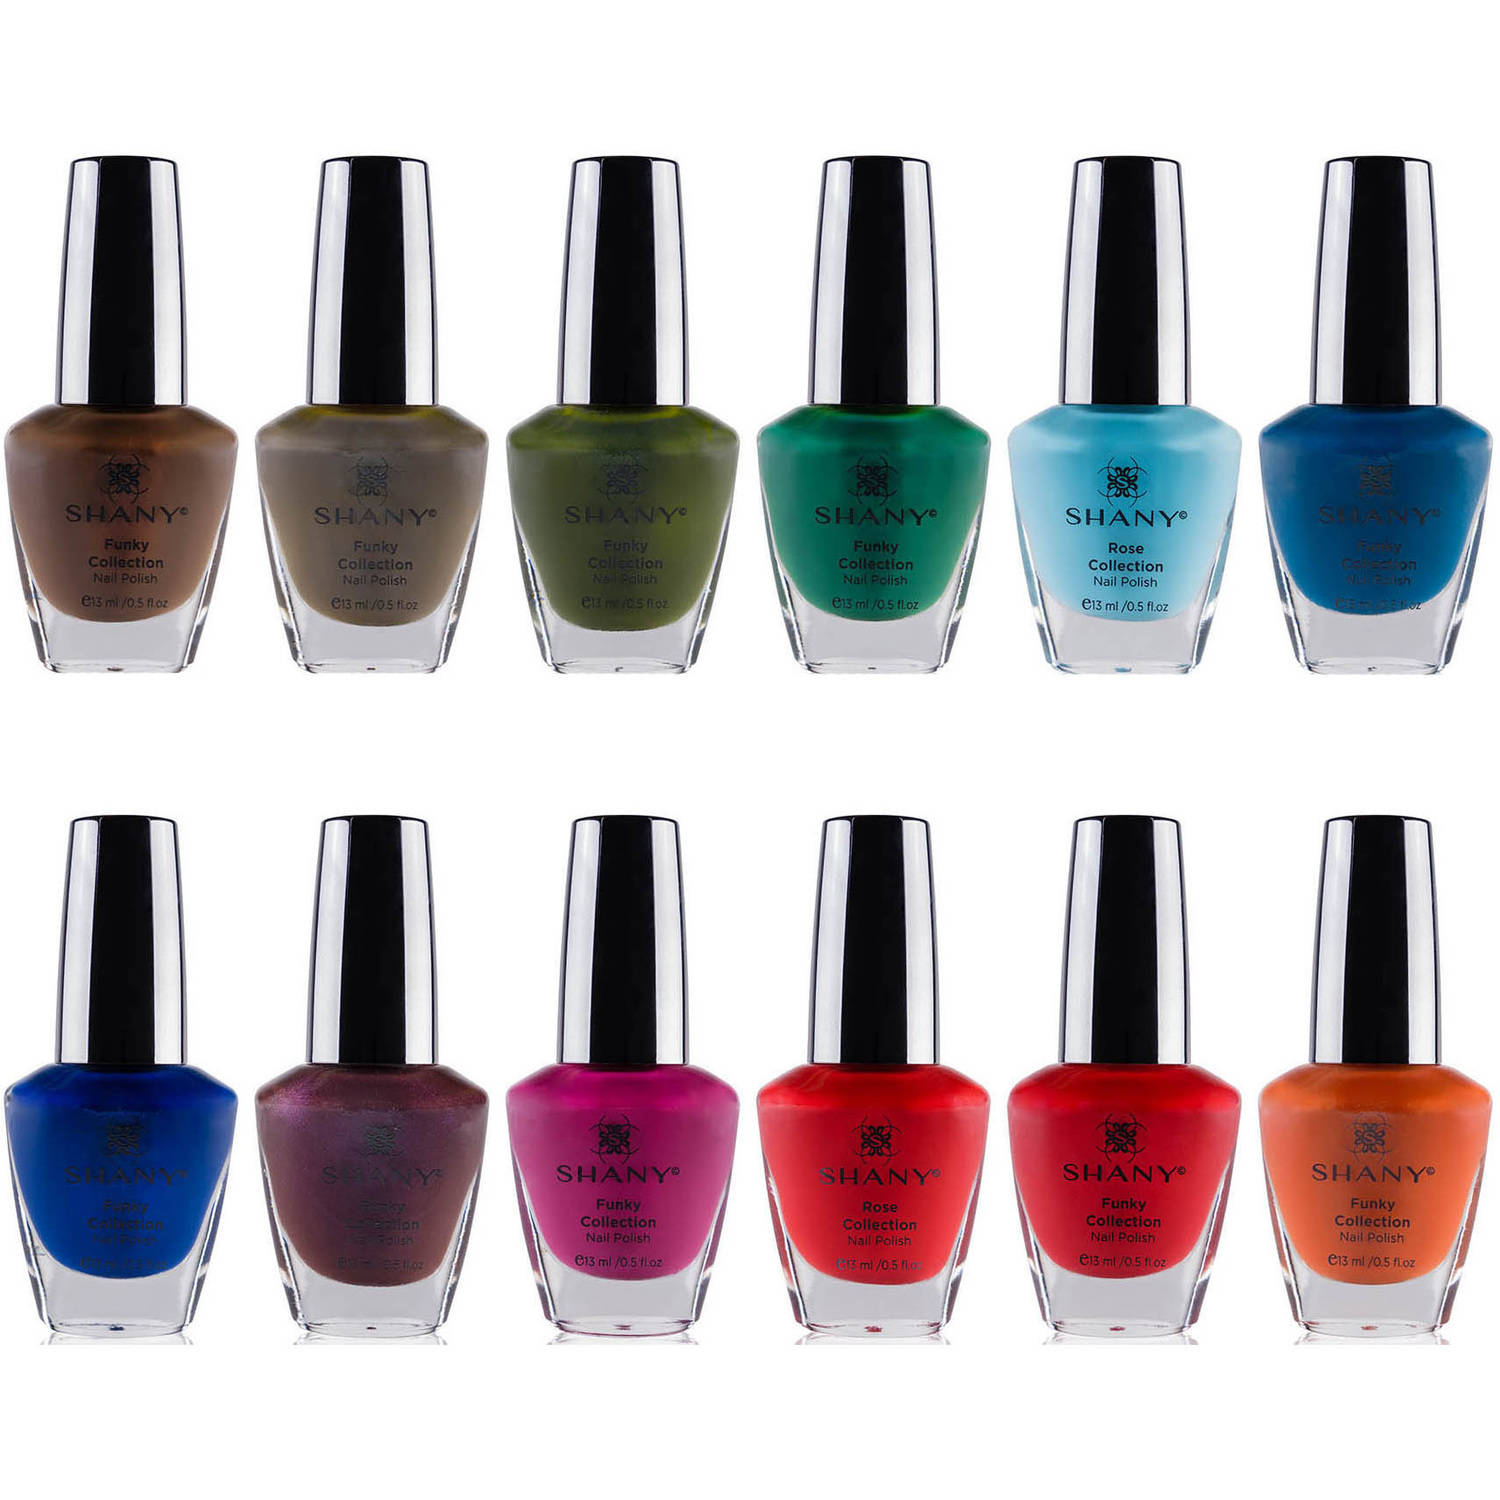 SHANY Funky Collection Nail Polish Set, 12 count